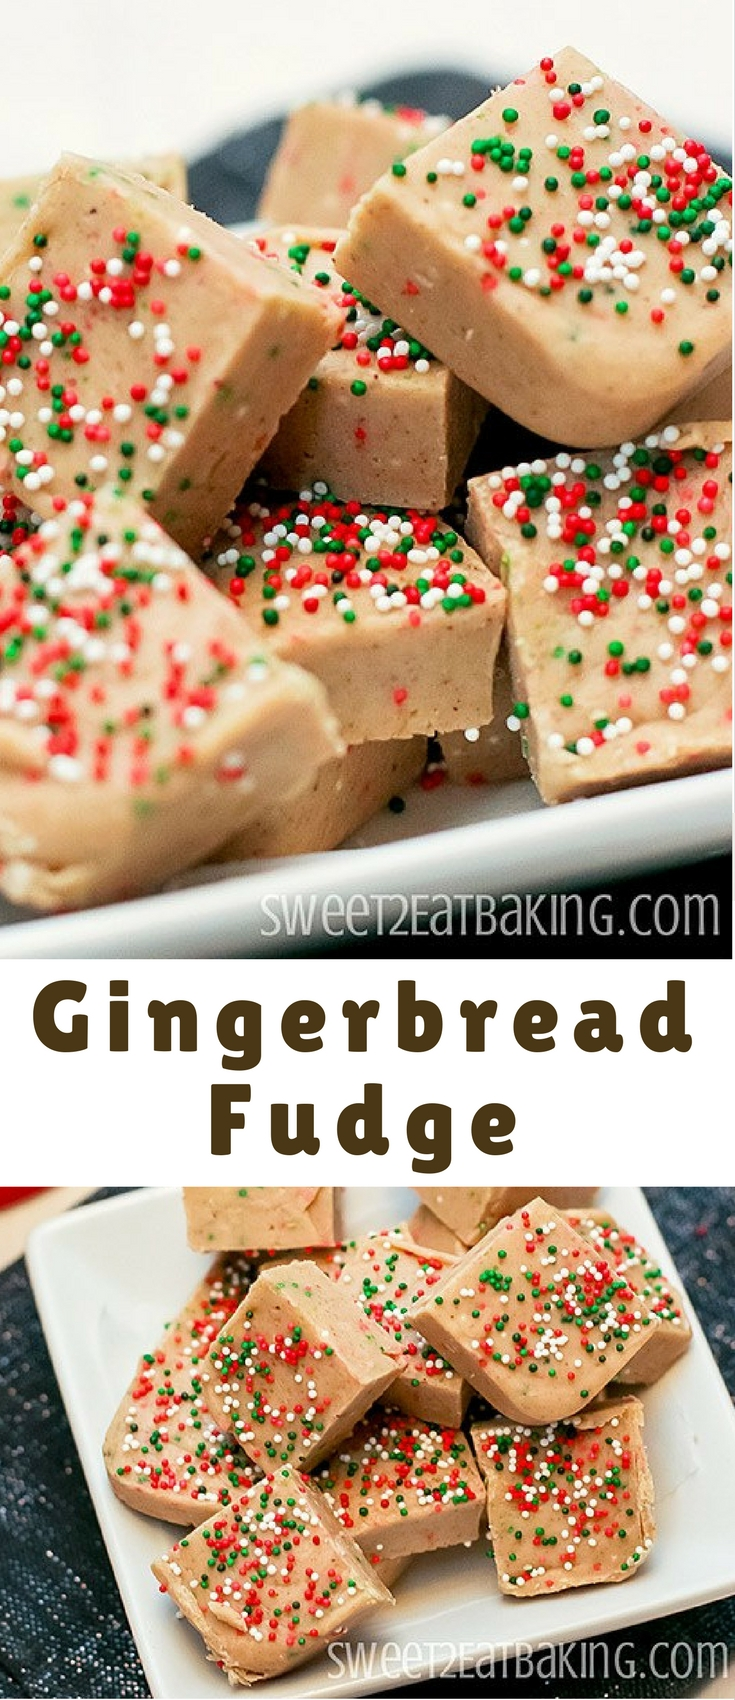 A quick and easy gingerbread fudge recipe. Perfectly spiced and festive, this gingerbread fudge is creamy and crunchy thanks to the festive Christmas sprinkles.